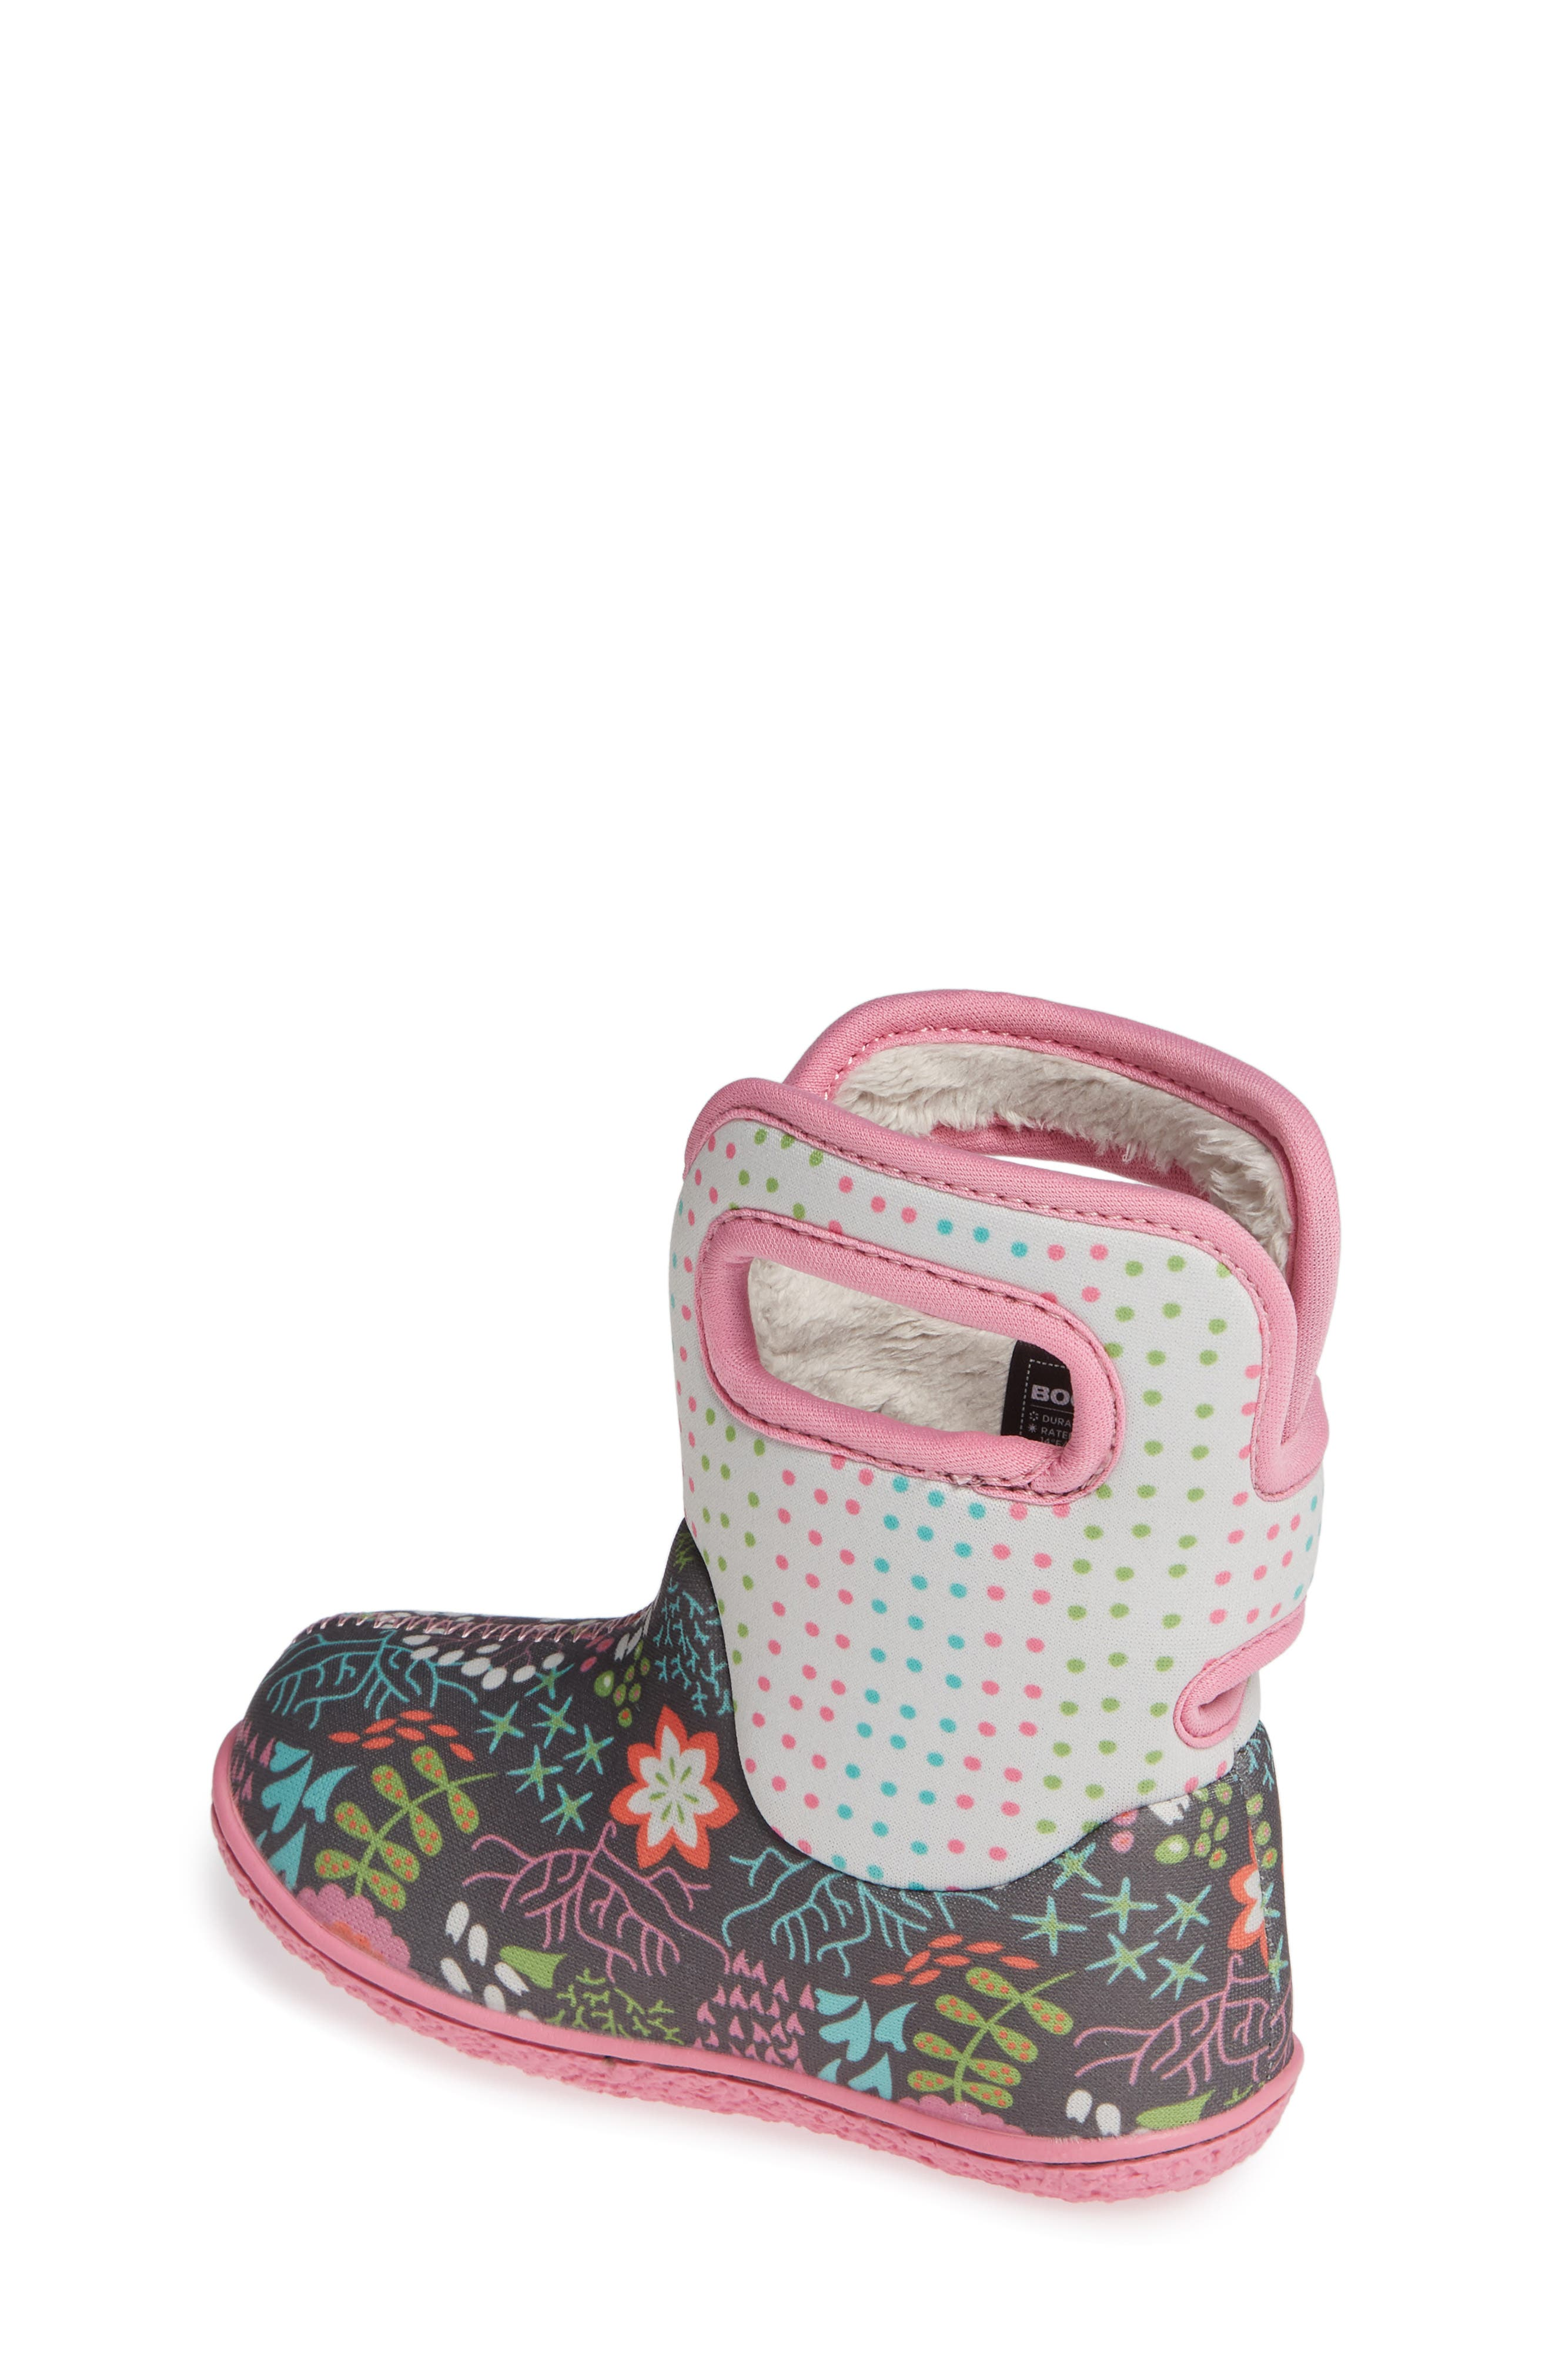 BOGS,                             Baby Bogs New Flower Dot Waterproof Boot,                             Alternate thumbnail 2, color,                             062